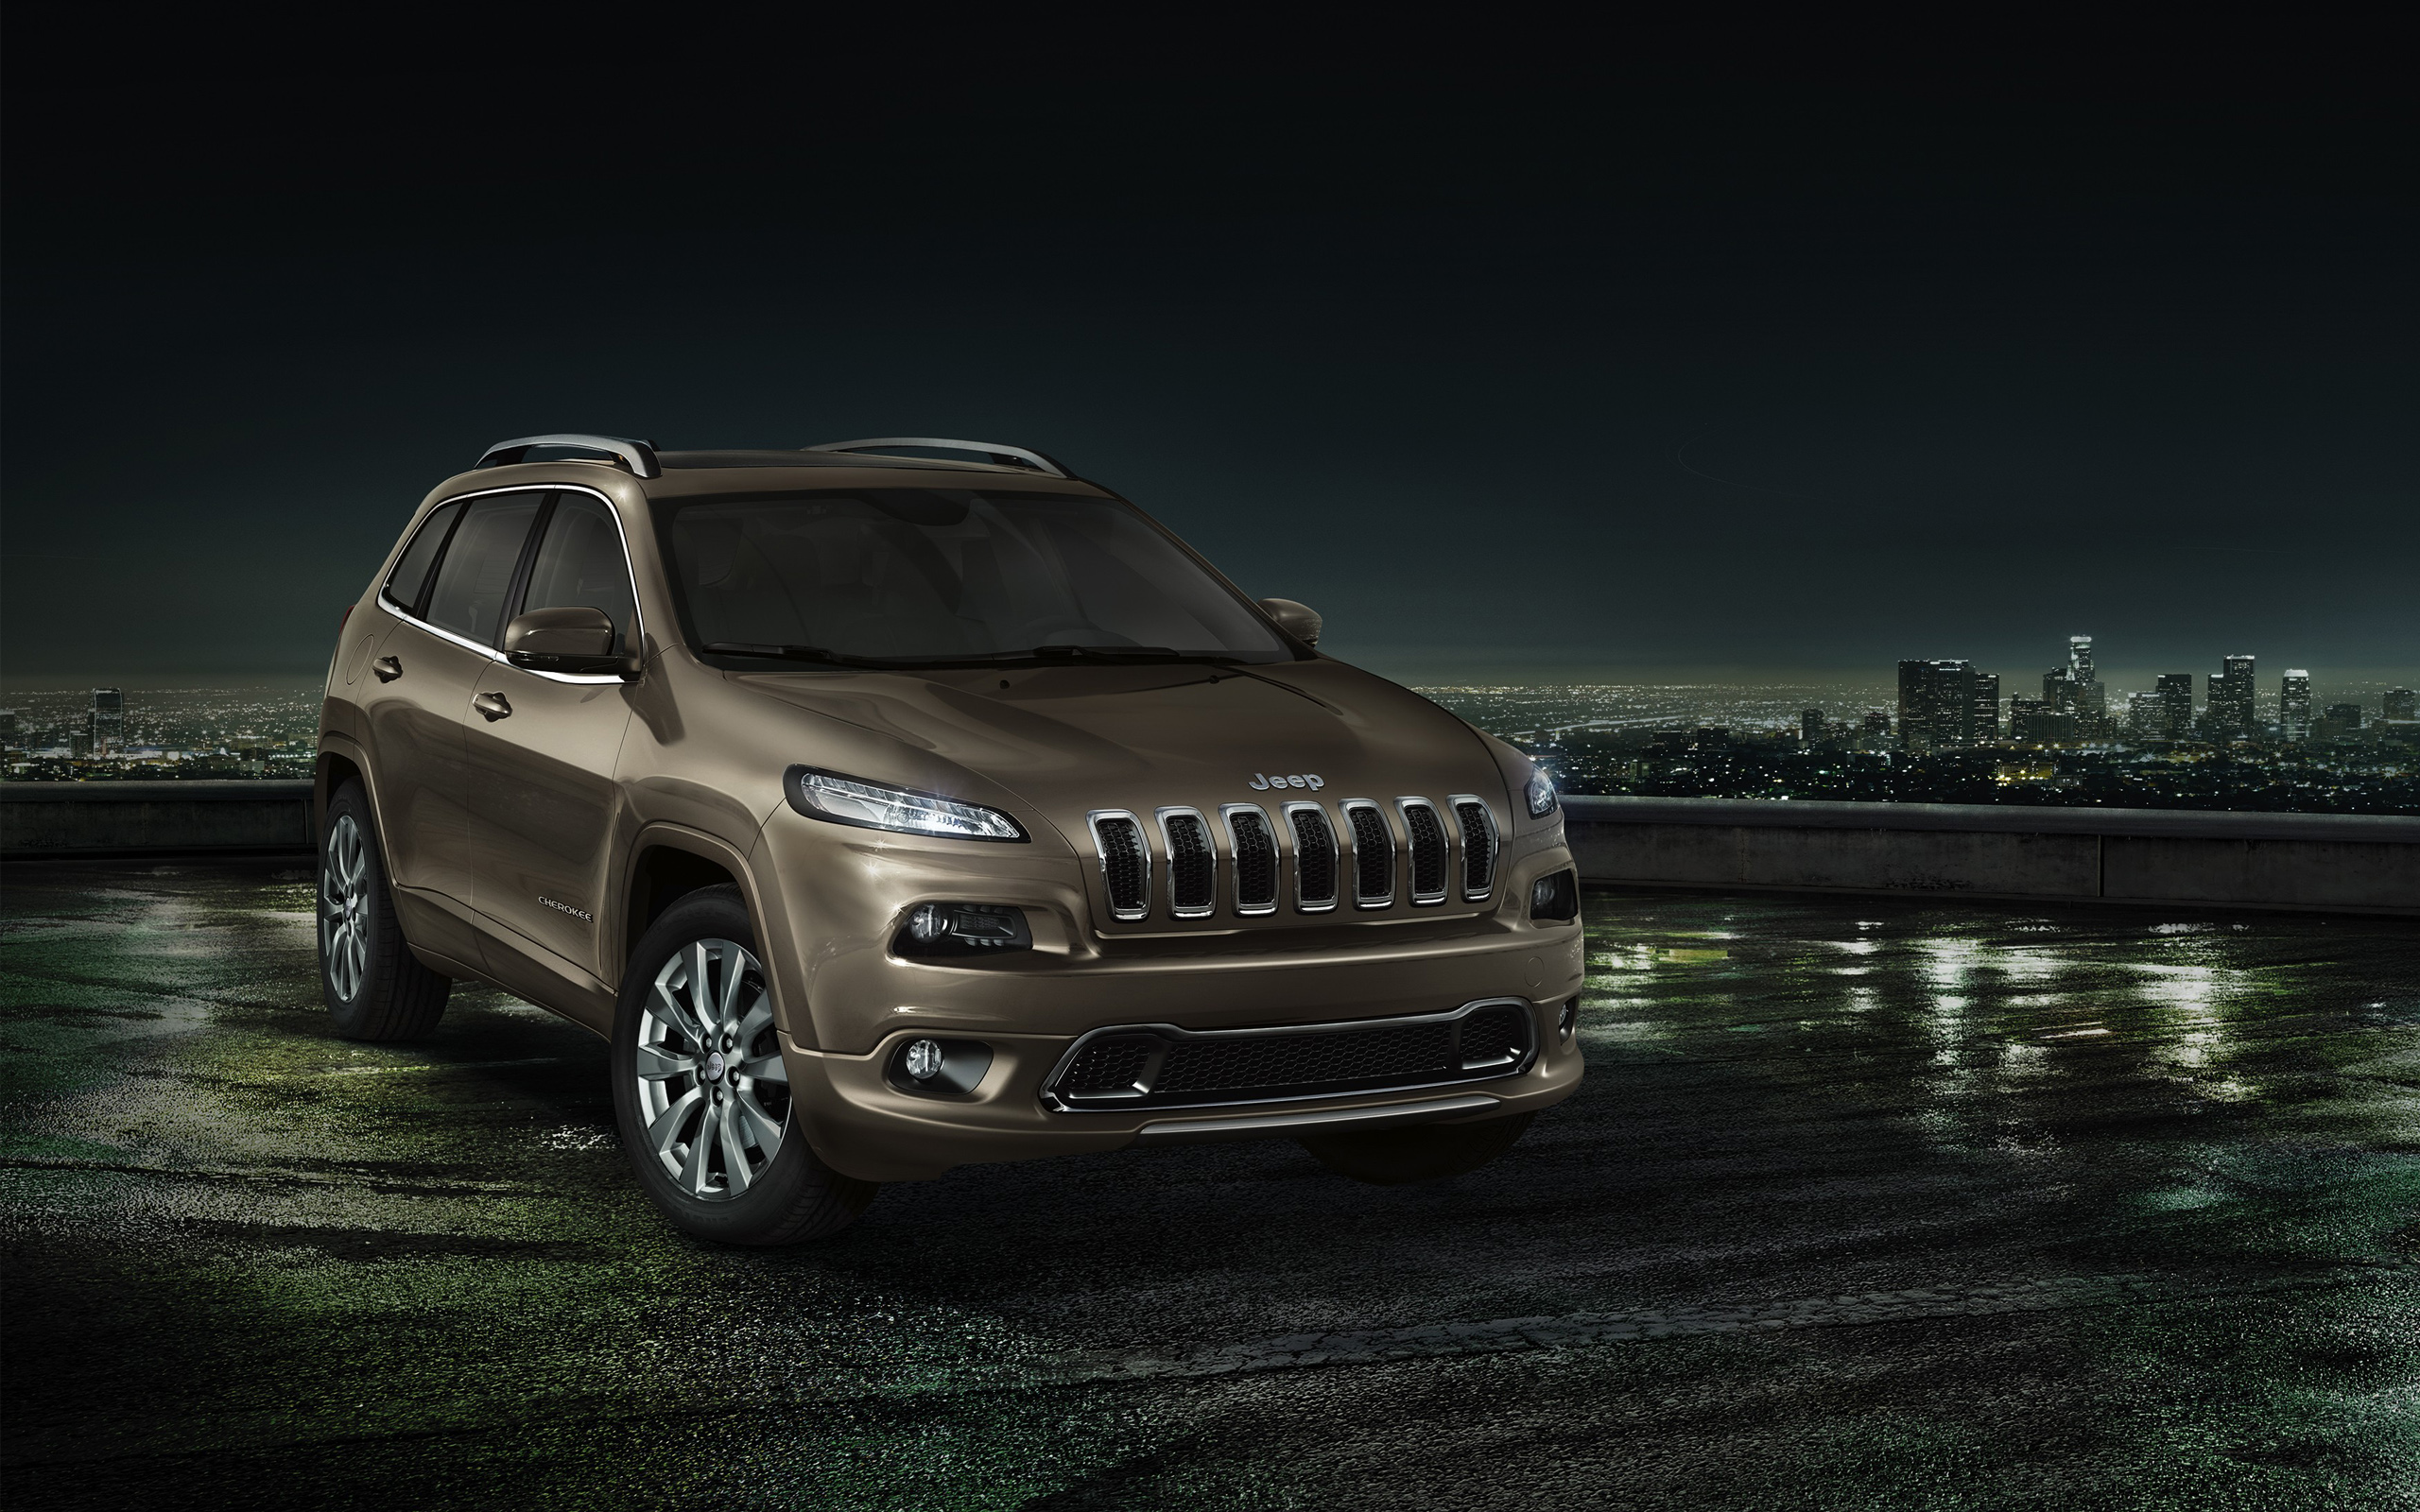 Wallpaper download of 2017 - 2017 Jeep Grand Cherokee